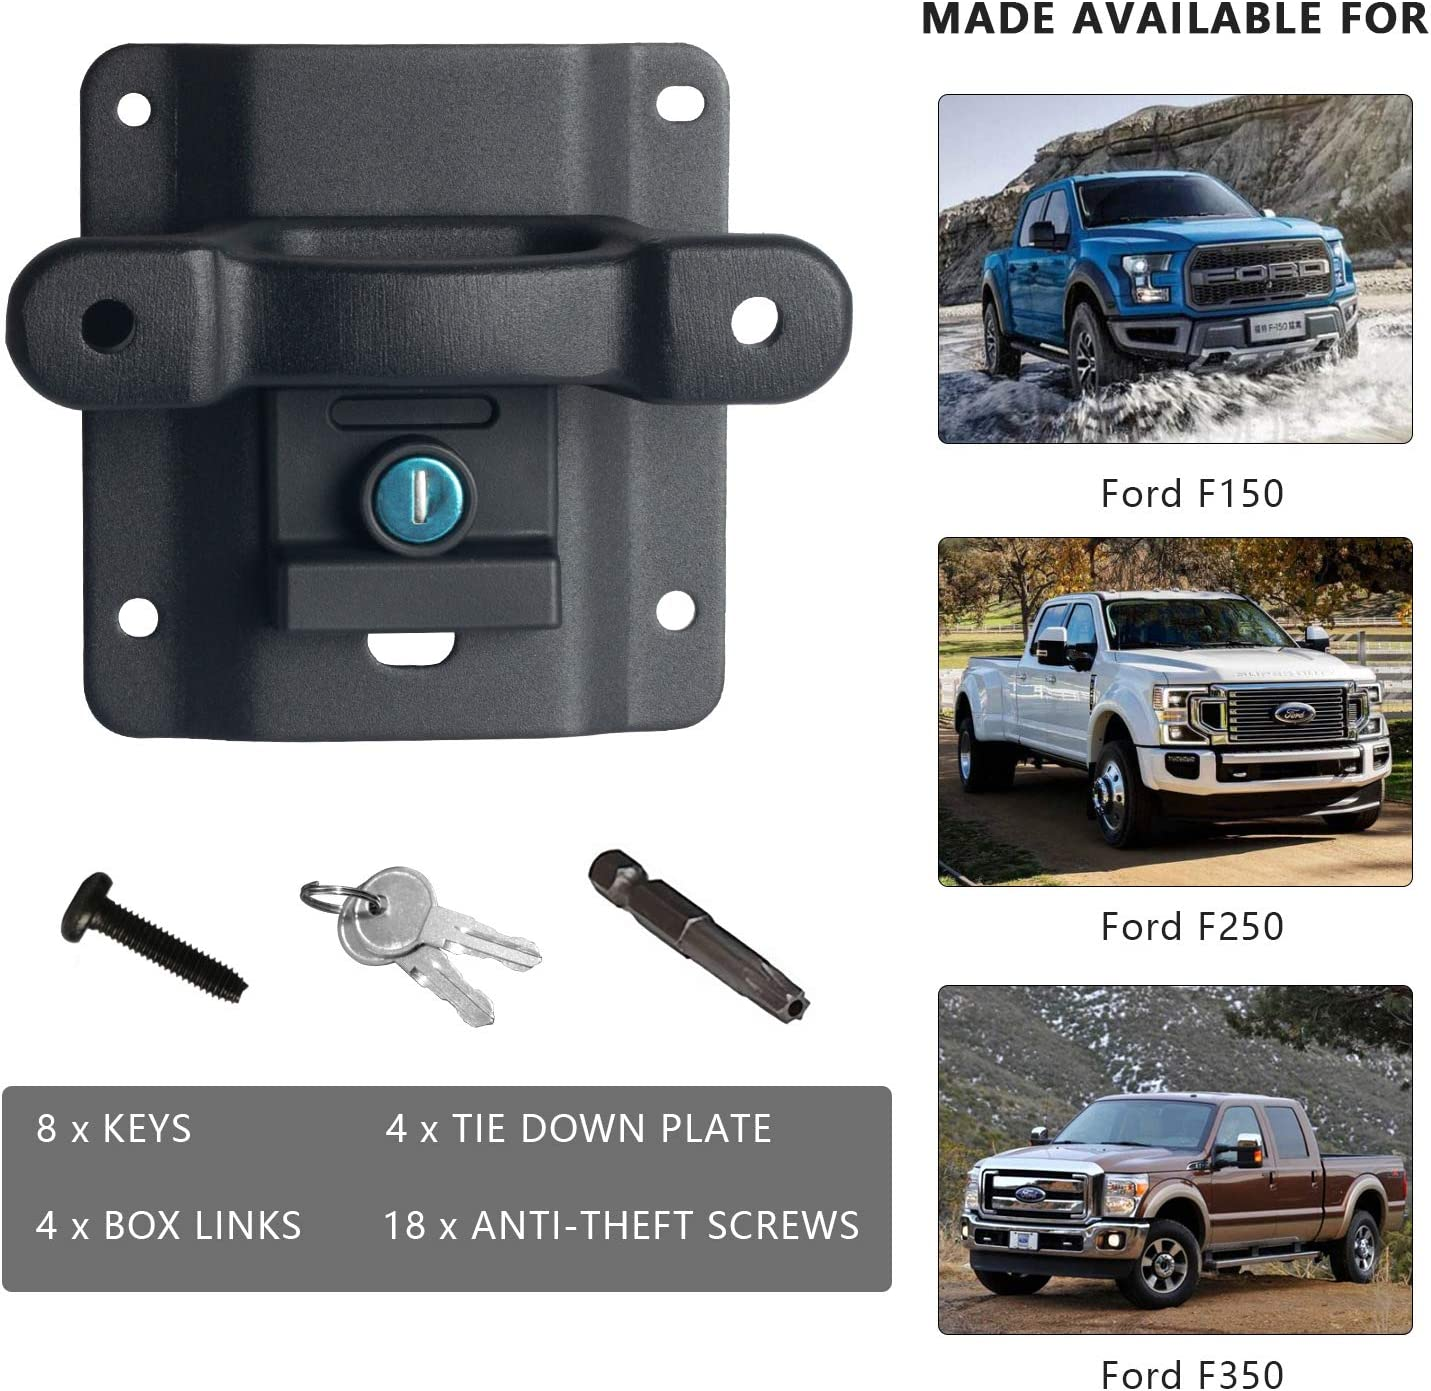 4 Pack Nstarsmotor Truck Tie Down Anchors Perfect Replacement for Ford 2015-2020 F150 F250 F350 Boxlinks /& Tie Down Plates FL3Z-9928408-AB FL3Z-99000A64-B